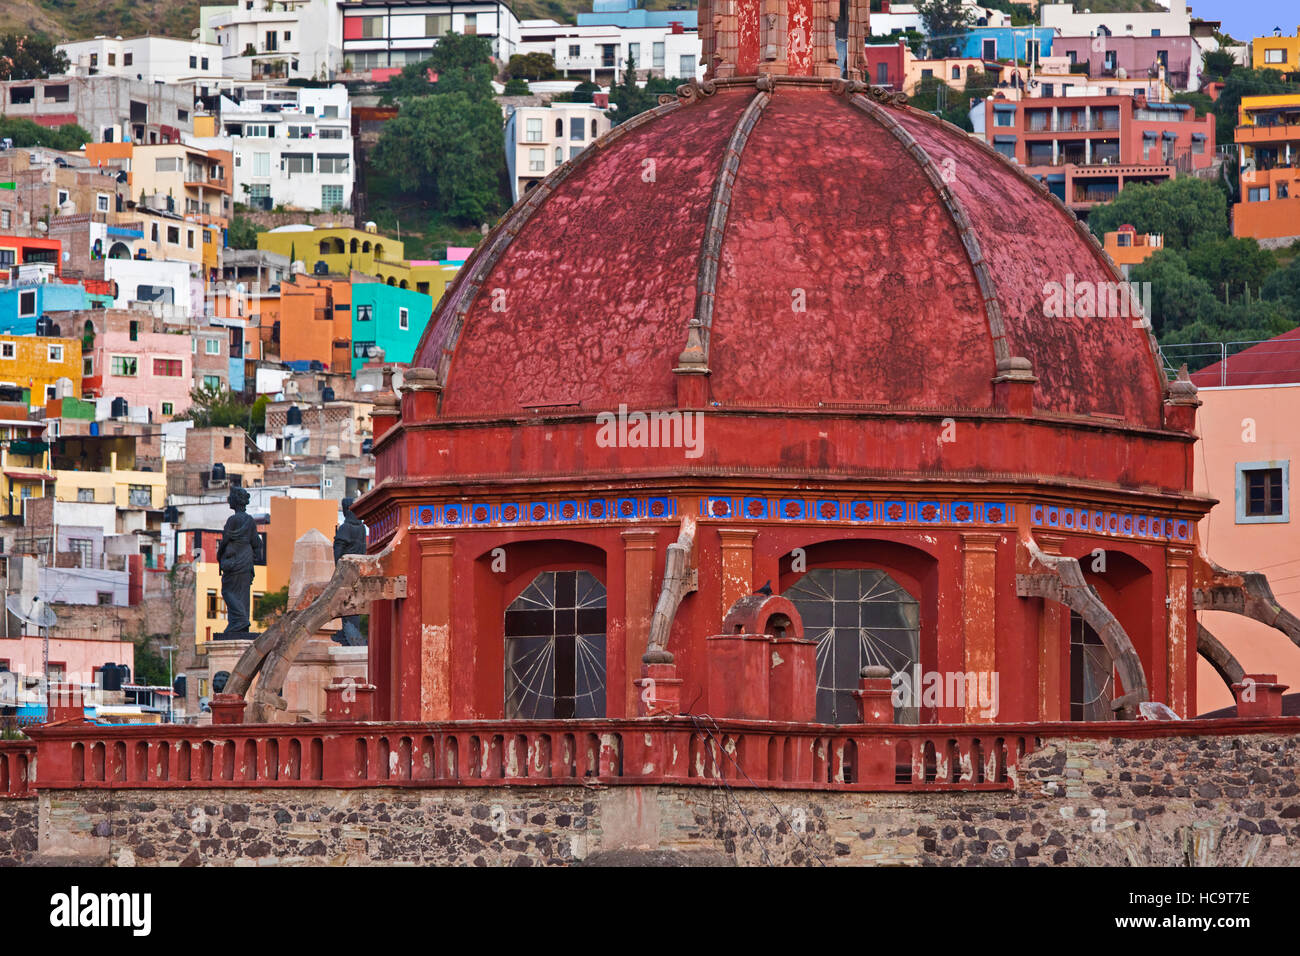 The red dome on an ancient church - GUANAJUATO, MEXICO Stock Photo